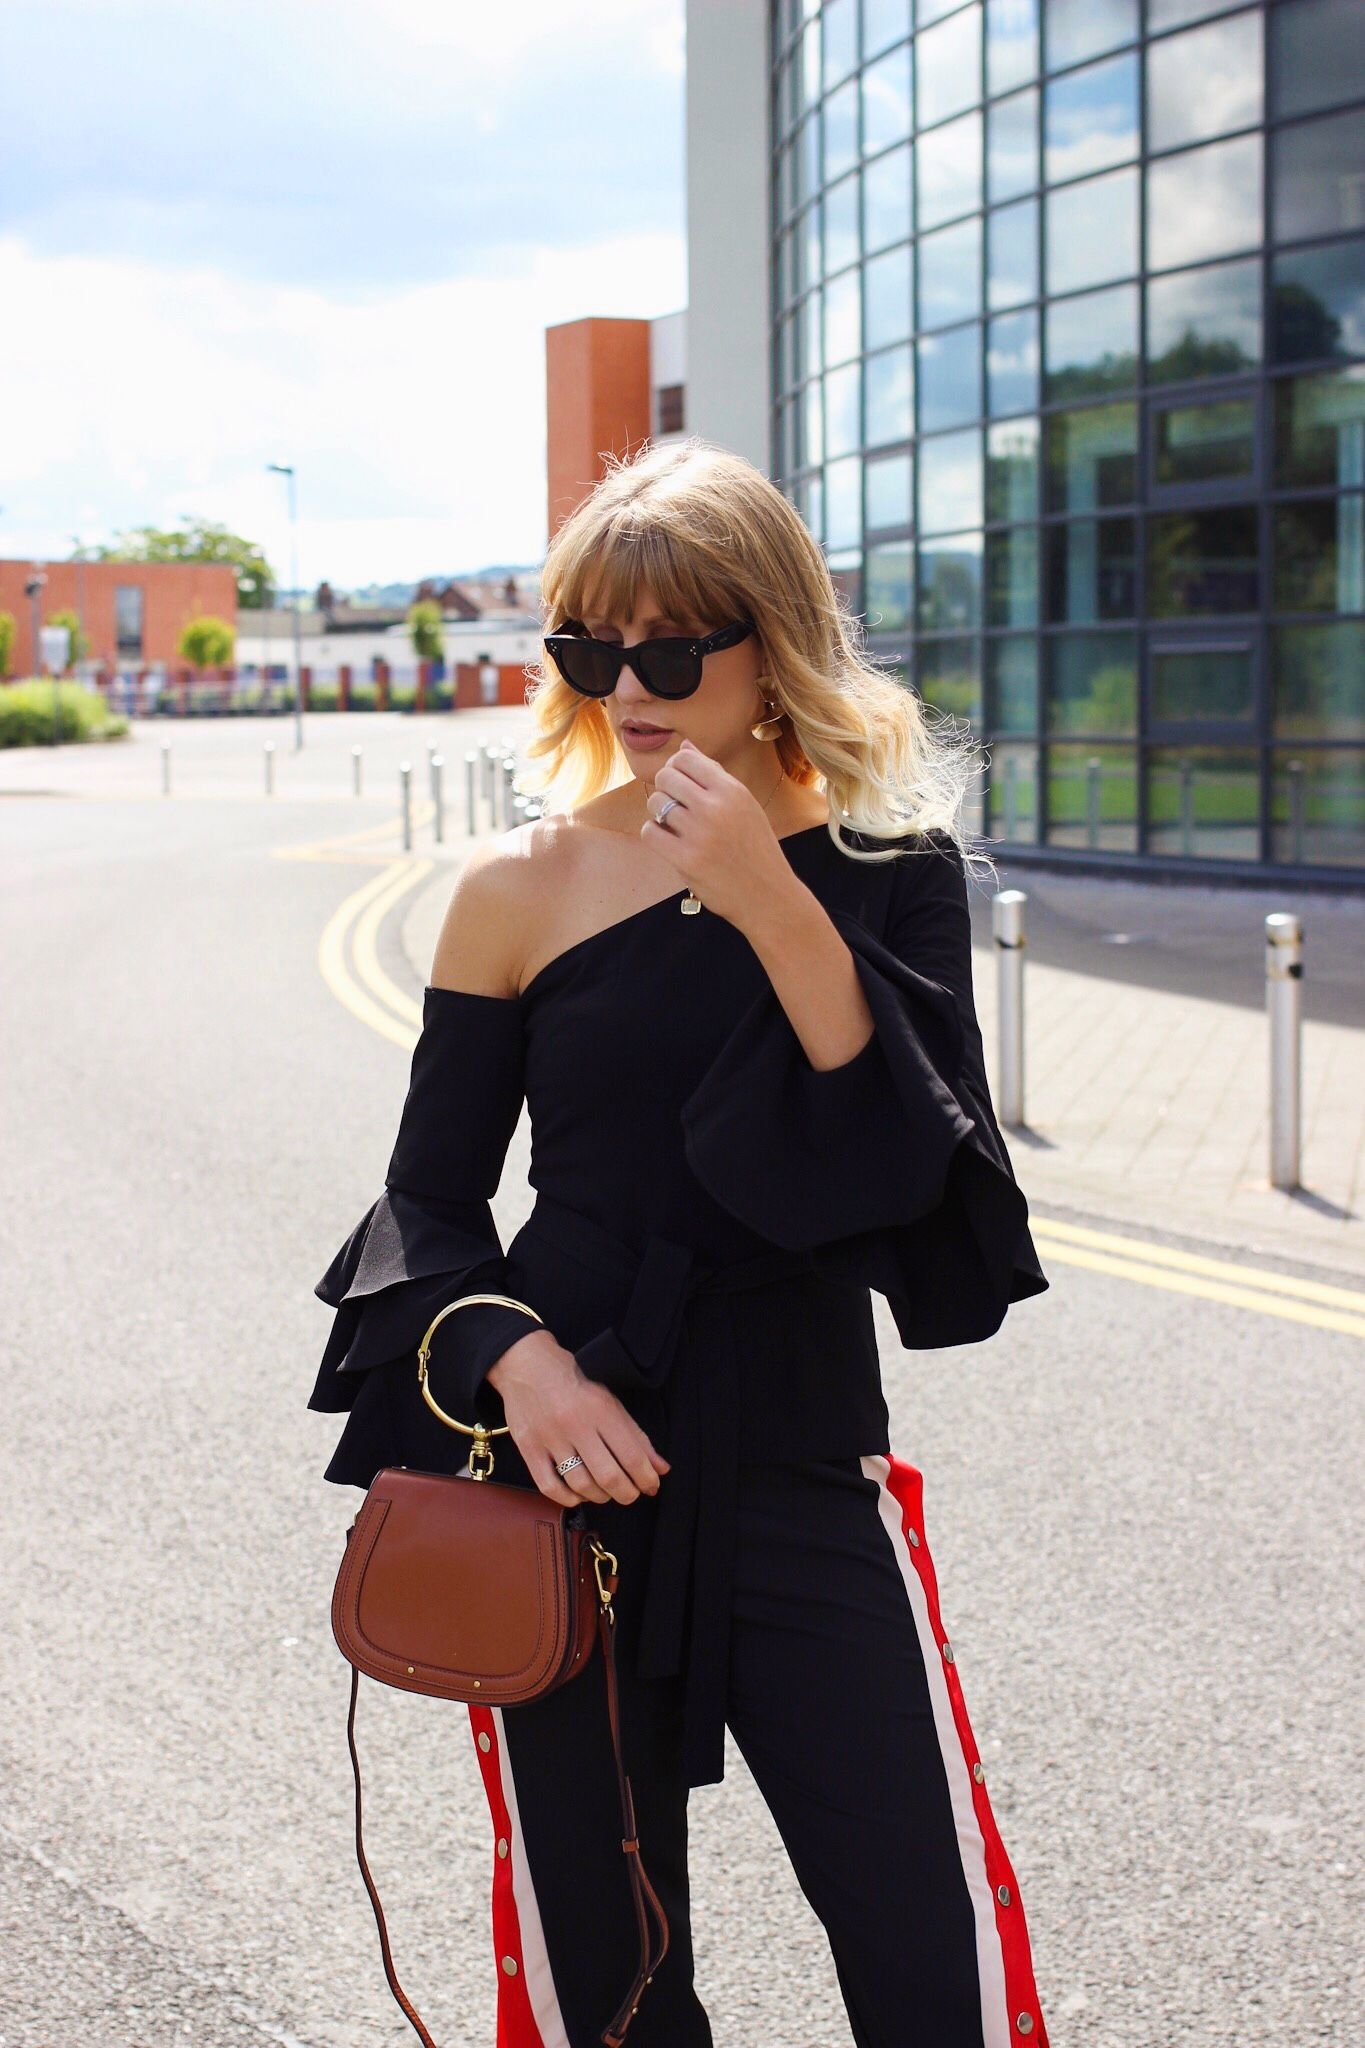 Celine sunglasses on fashion blogger with Chloe Nile bag dupe from Jessica  Buurman f7cc45872